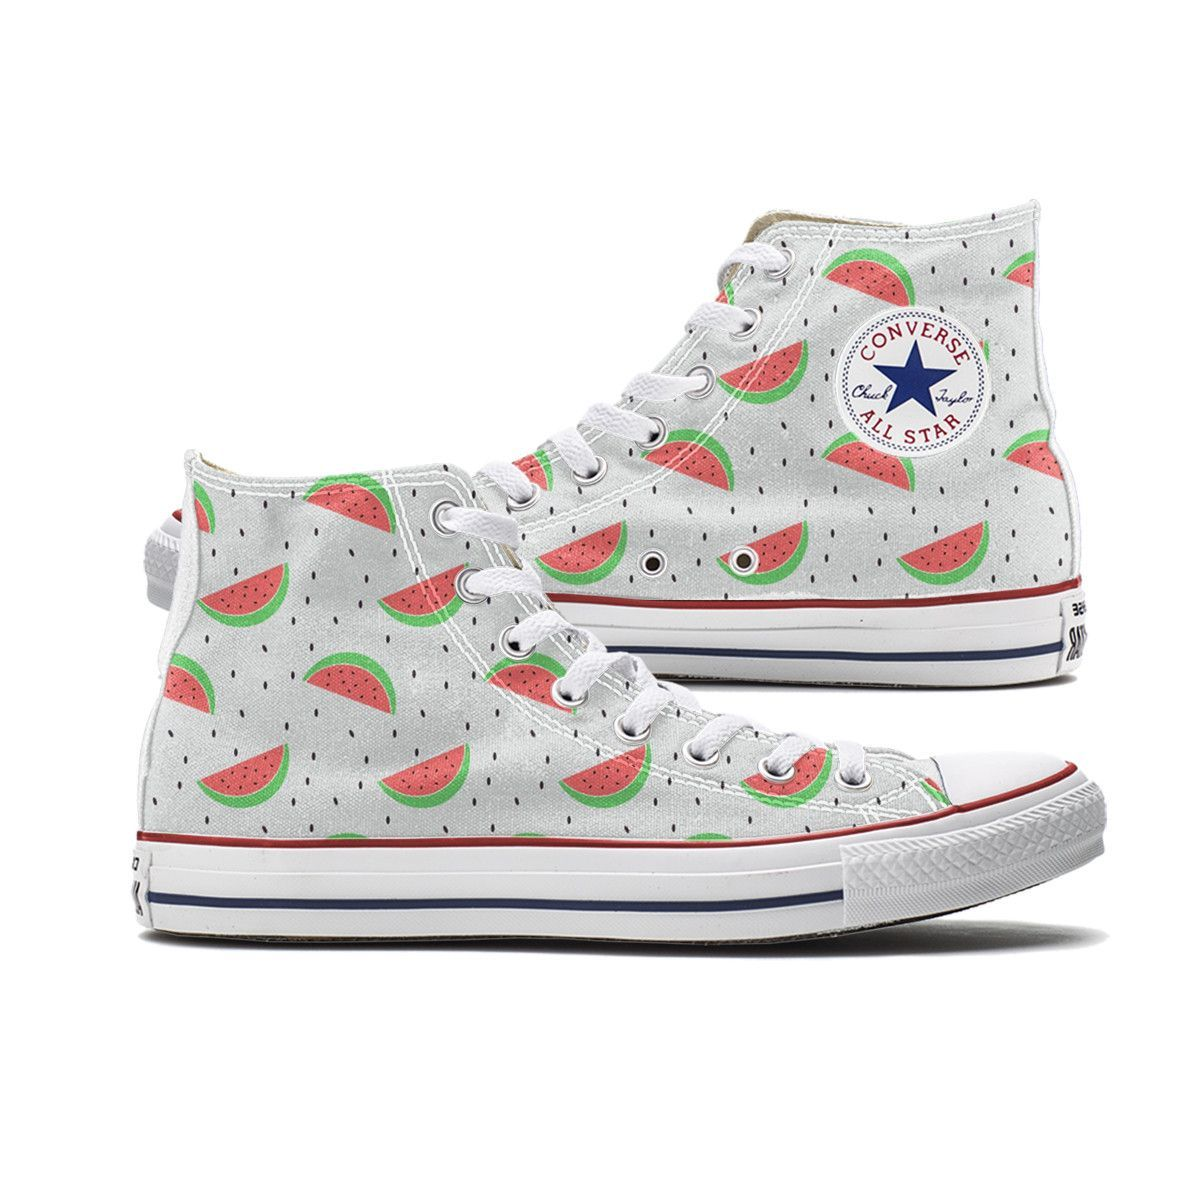 33e272d6379 Watermelon Converse High Top chucks are here and made to order especially  for you. These Chucks feature a Watermelon pattern over both panels of the  shoe.